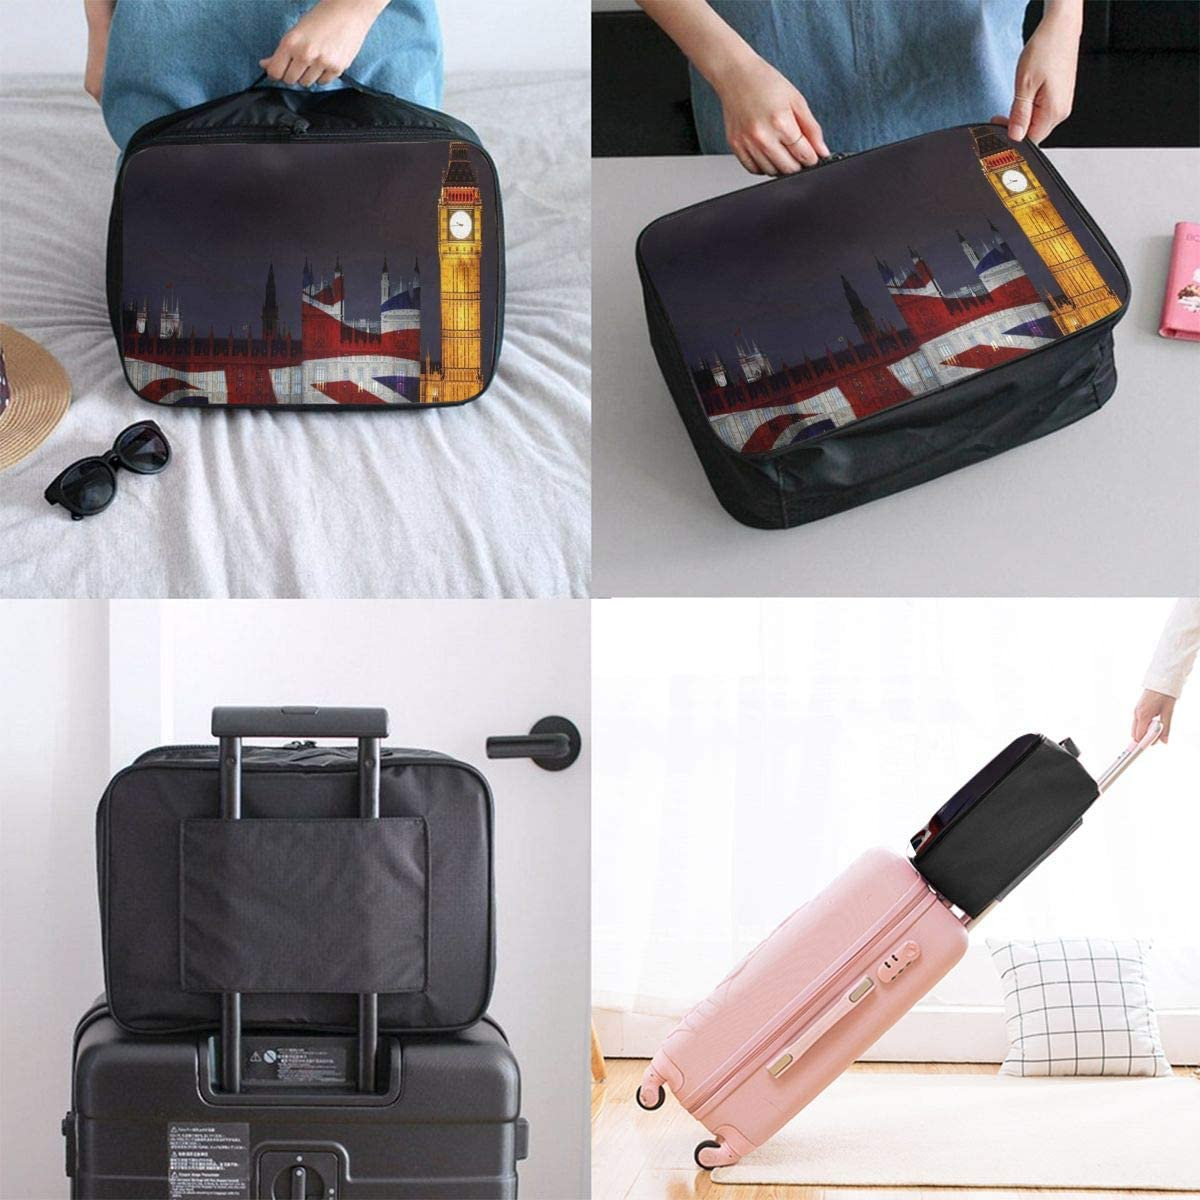 Travel Bags London Big Ben Union Jack Portable Suitcase Trendy Trolley Handle Luggage Bag